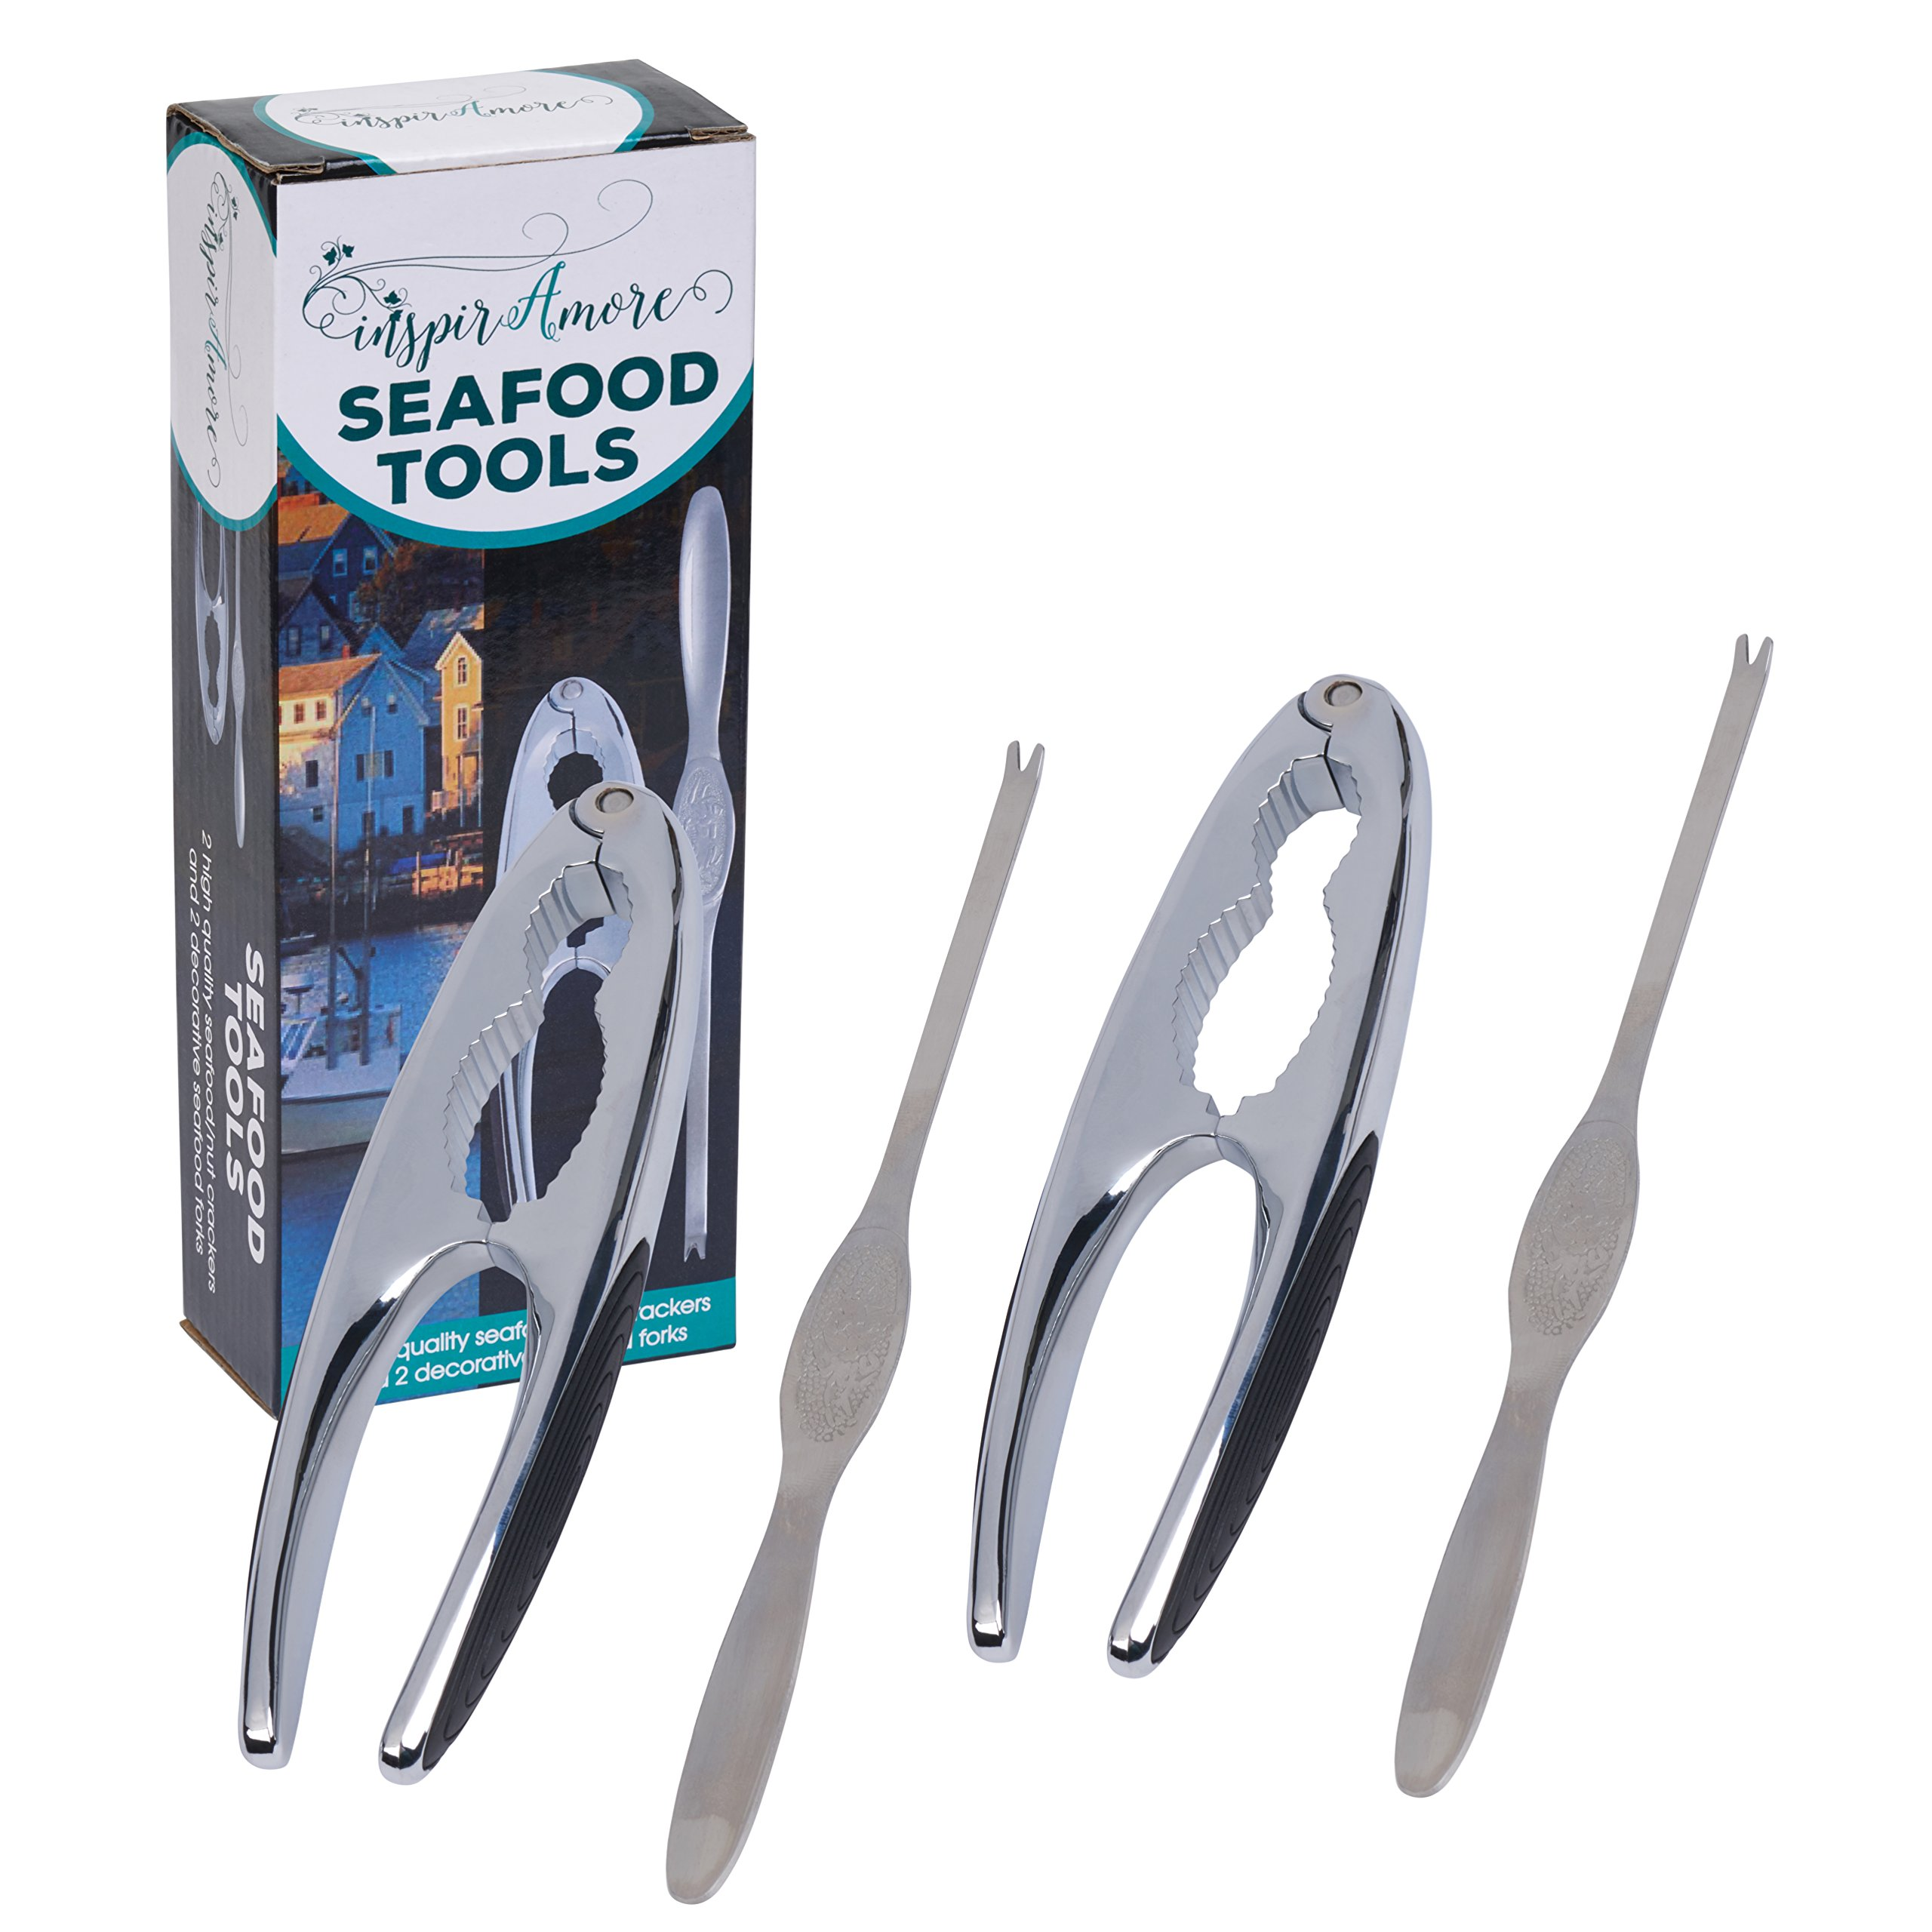 Lobster Cracker Tool Set for Shellfish and Nuts - 2 Pairs of Non-Slip Handle Crackers and 2 Stainless Steel Seafood Forks